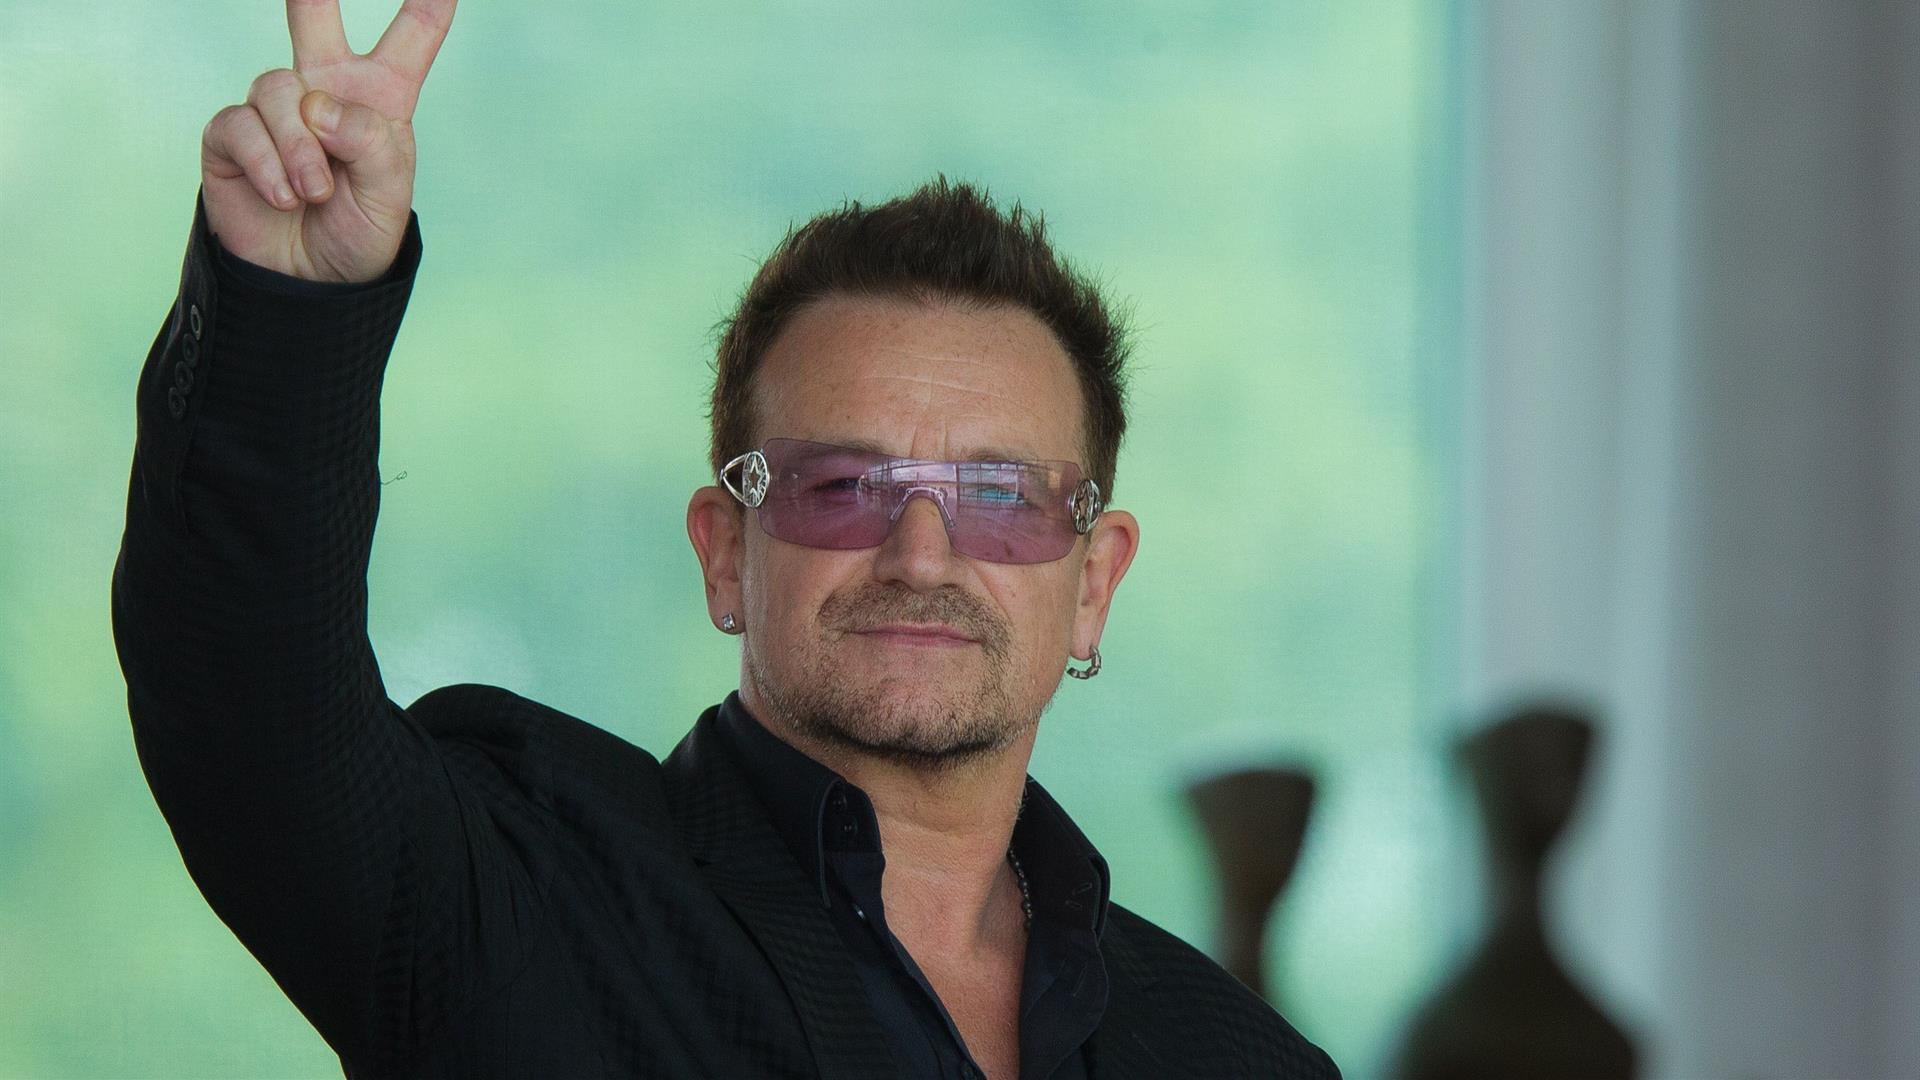 Bono Vox, Peace, Man With Glasses 246991